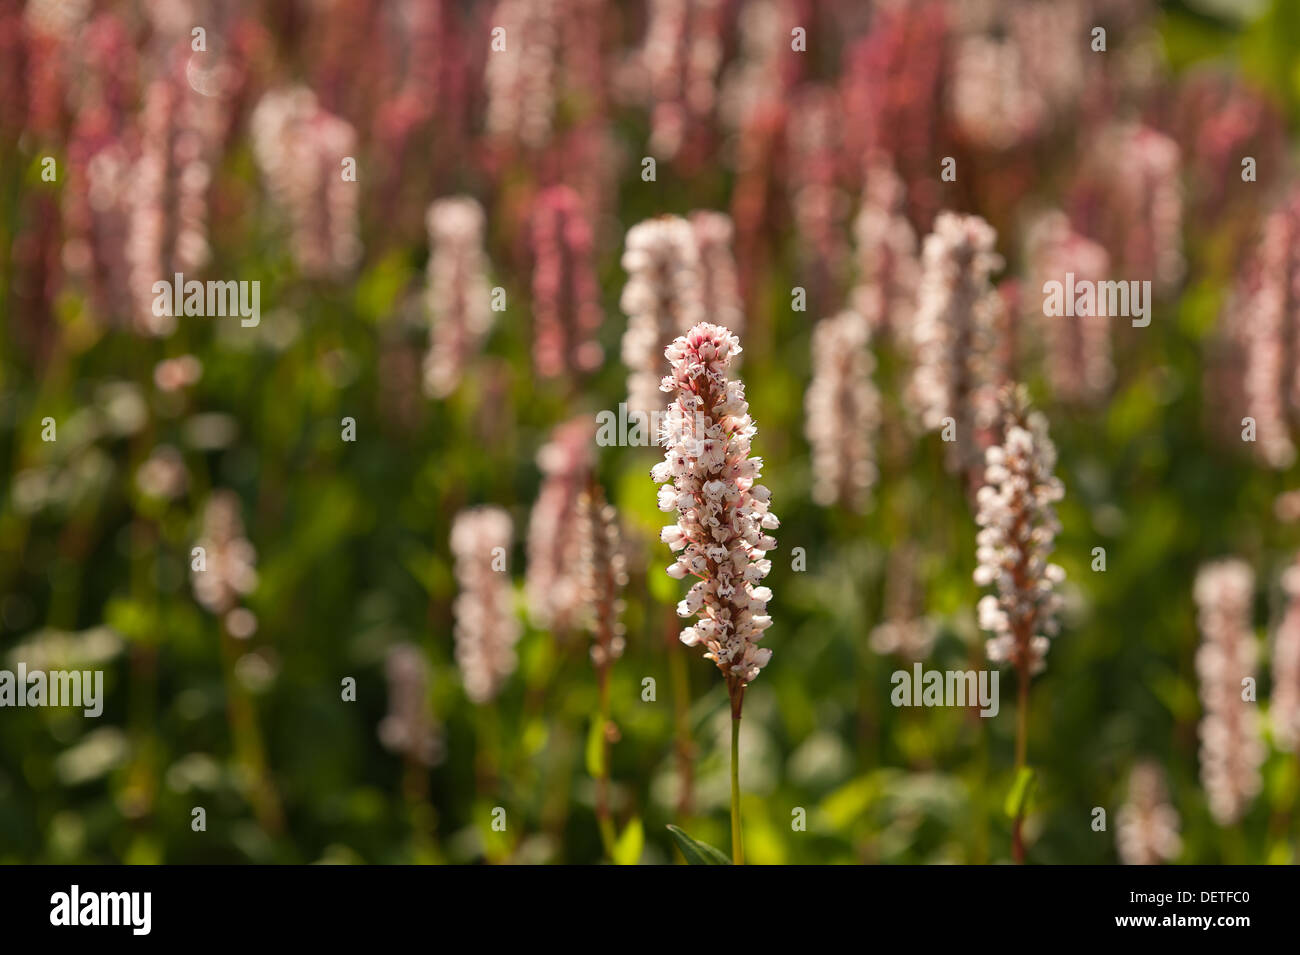 Pink red white blooms of persicaria affinis fleece flower himalayan pink red white blooms of persicaria affinis fleece flower himalayan knotweed contrast with green leaves mightylinksfo